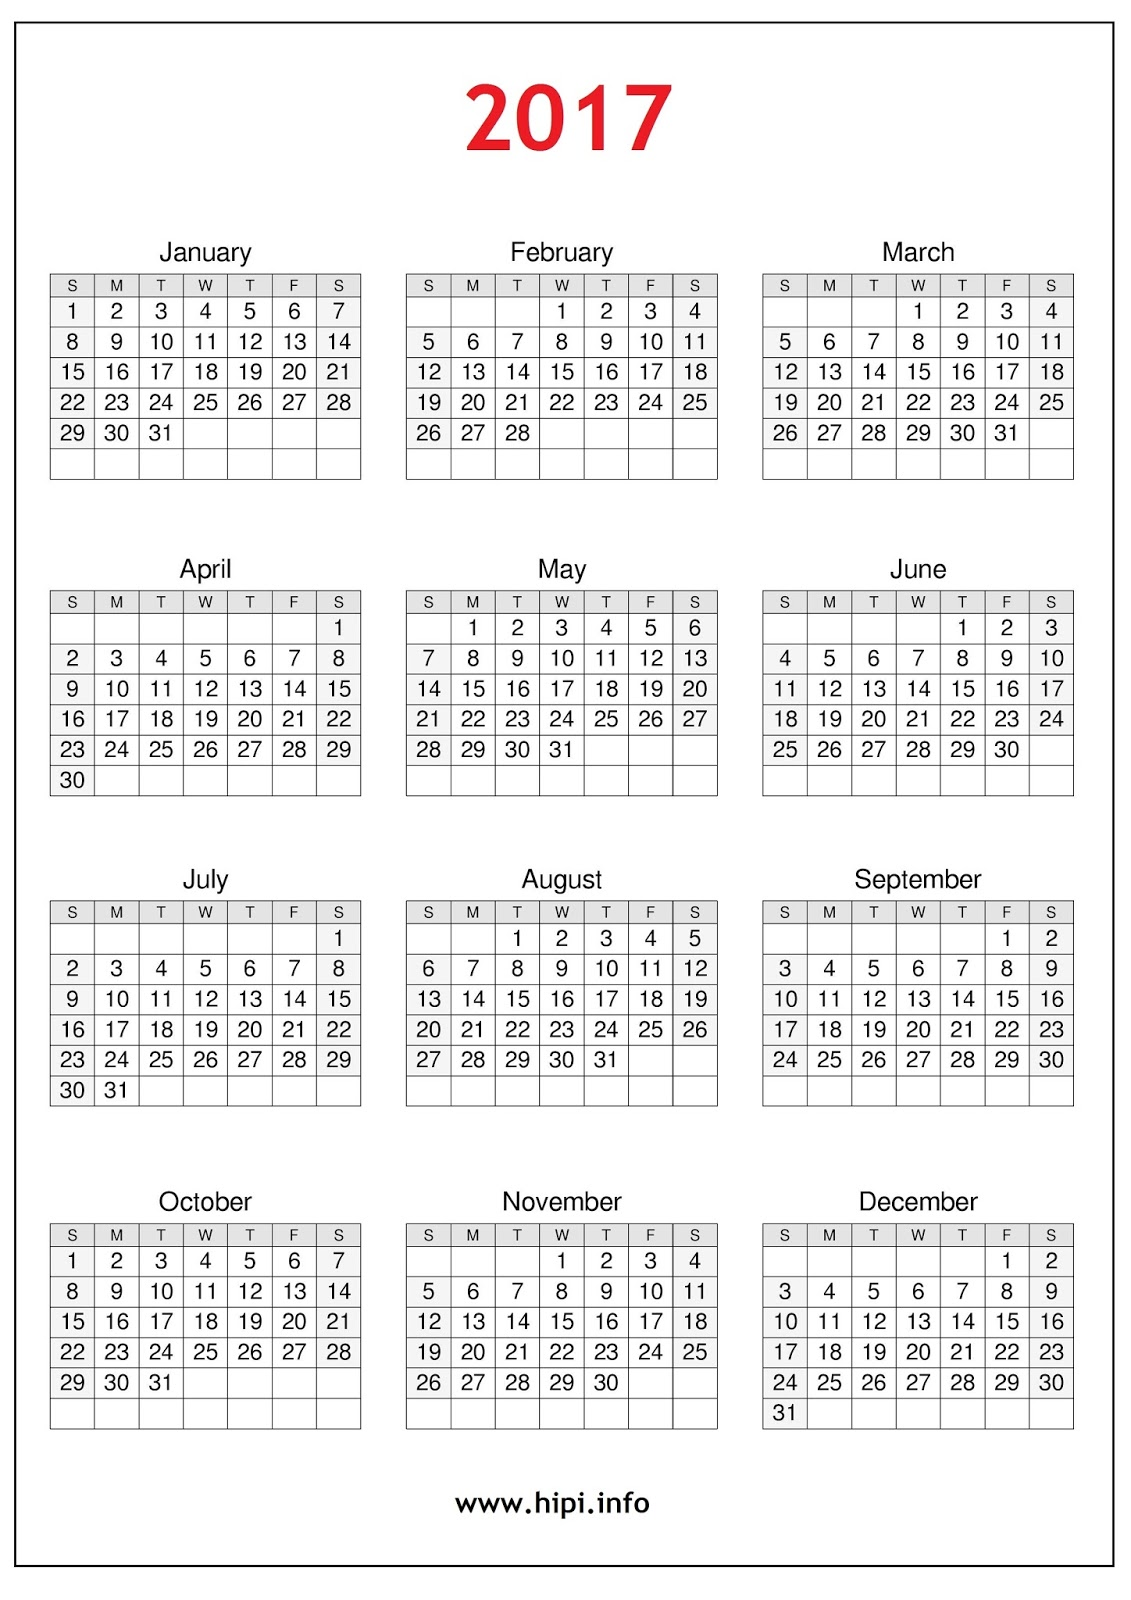 2017 Calendar Printable Free - Free Download